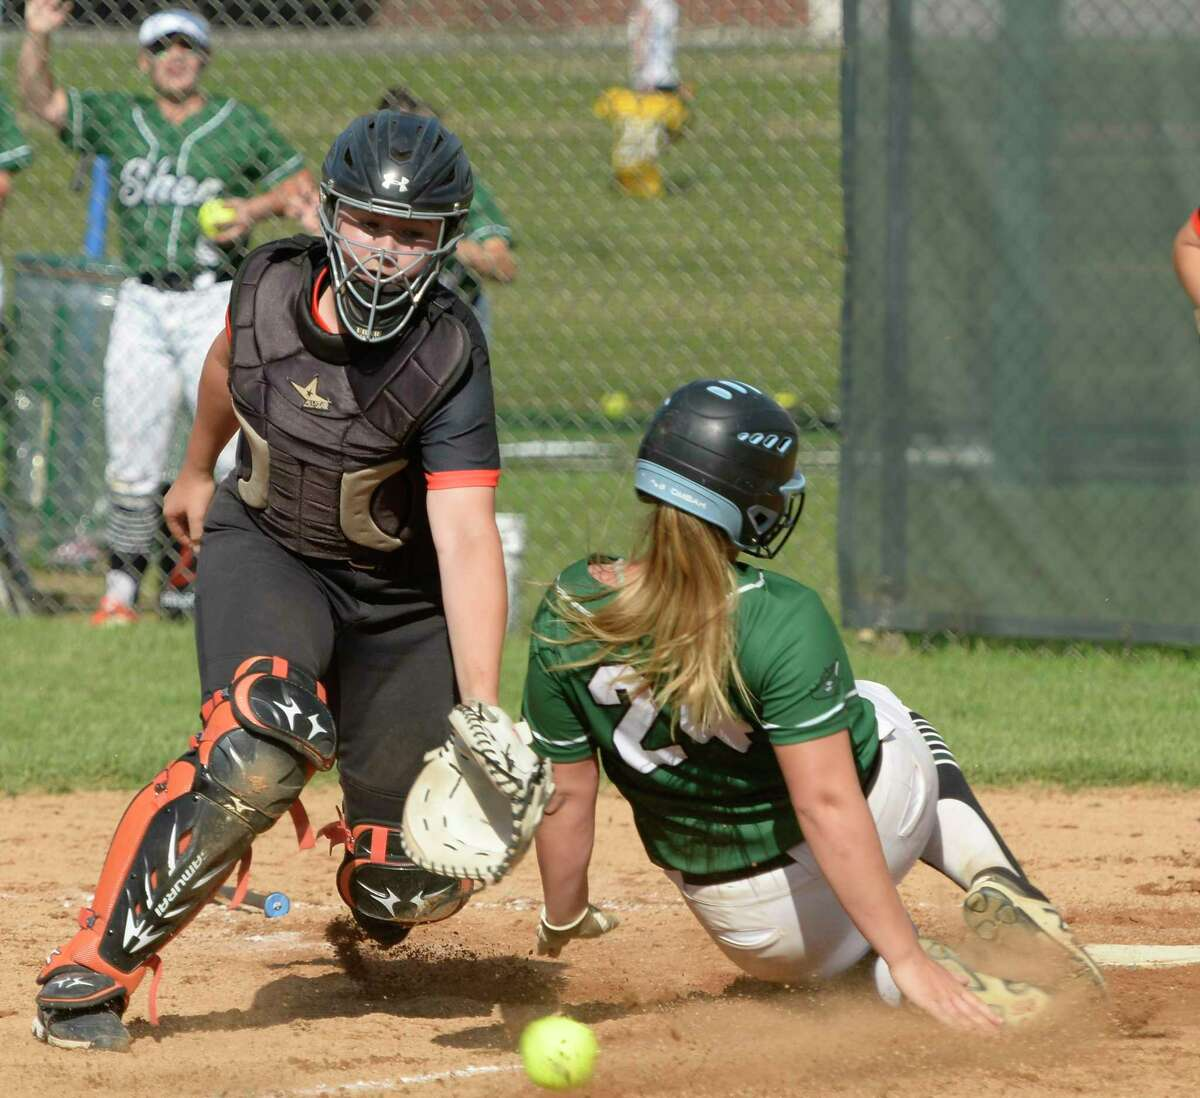 Shen's Hannah Smith slides home before Bethlehem catcher Ella Traynor catches the ball during the Class AA sectional final on Saturday, Jun. 12, 2021, in Clifton Park, N.Y. (Jenn March, Special to the Times Union)